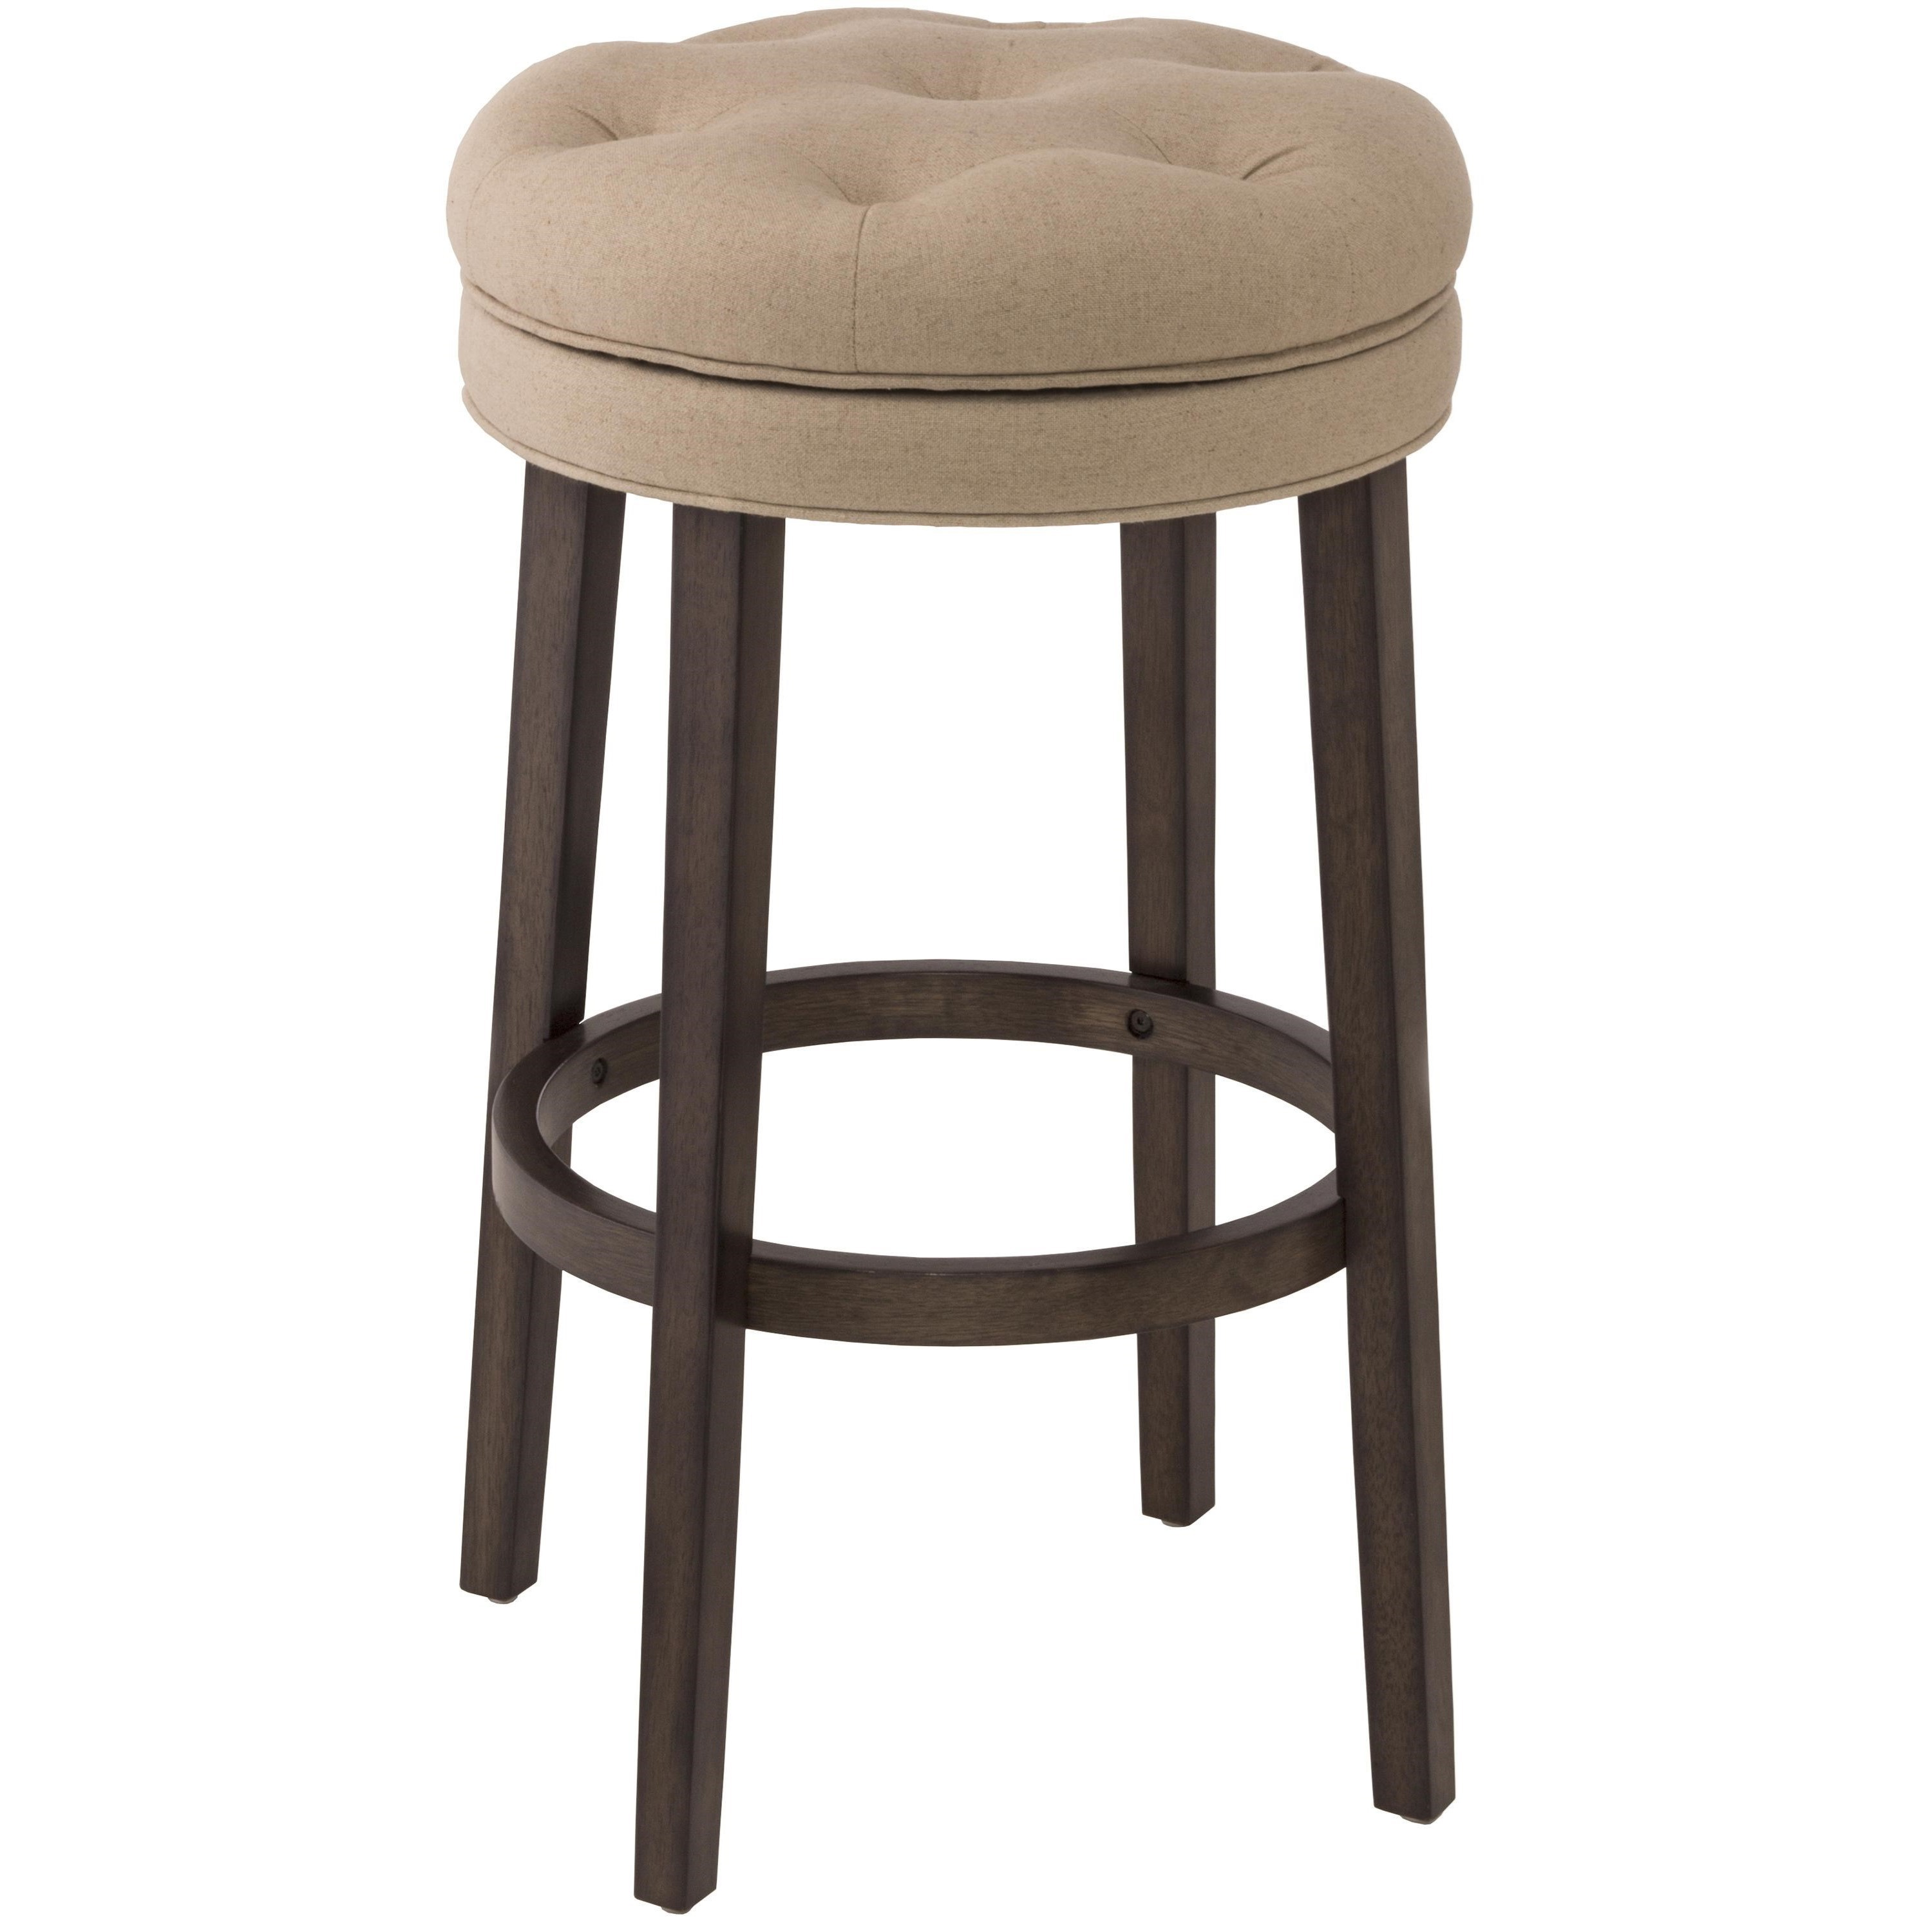 Bright Colored Bar Stools Hillsdale Backless Bar Stools 5914 825 Backless Swivel